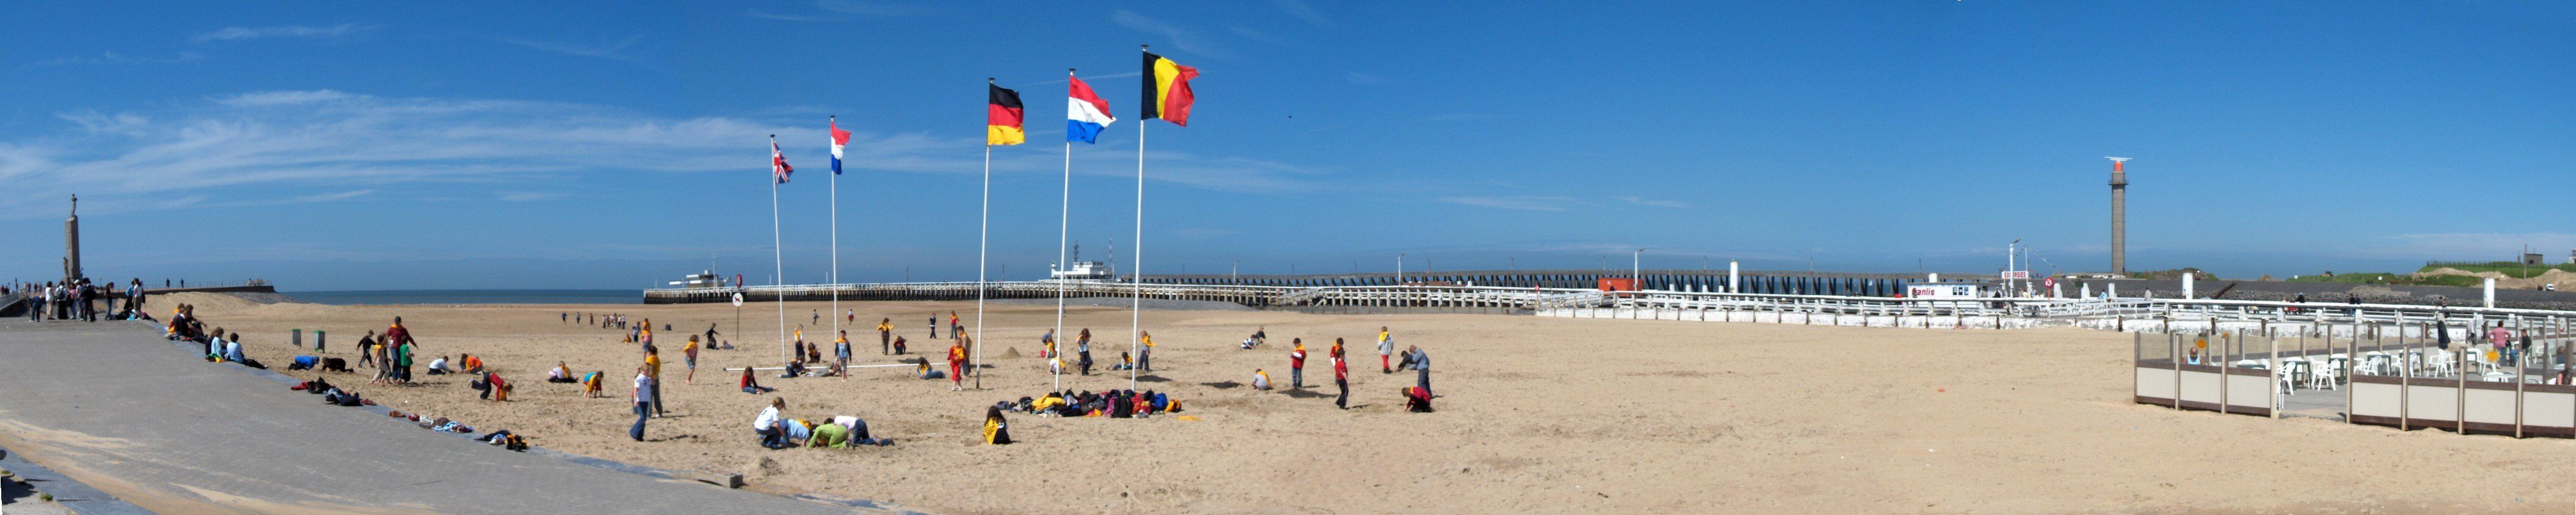 Ostend Beach And The Promenade Pier Panoramic View